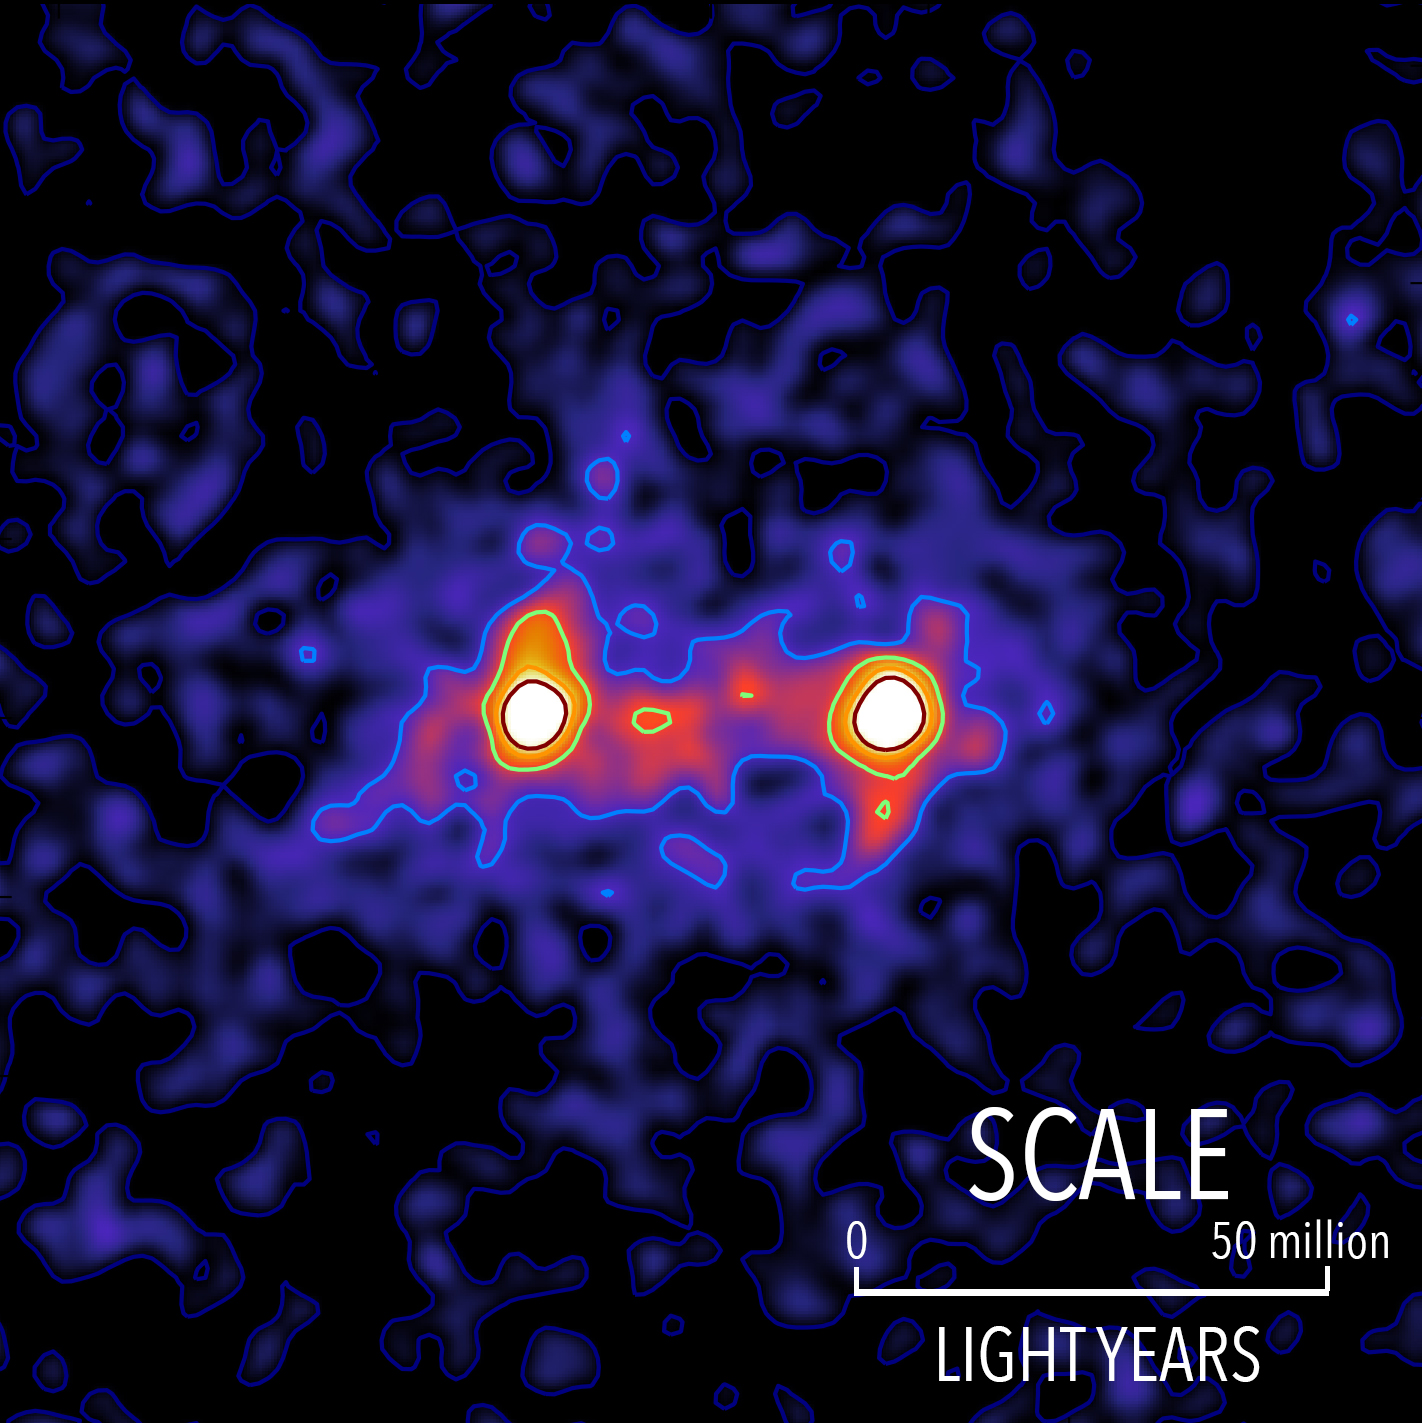 Astronomers Create 'Image' of Dark Matter Bridge that Connects Galaxies